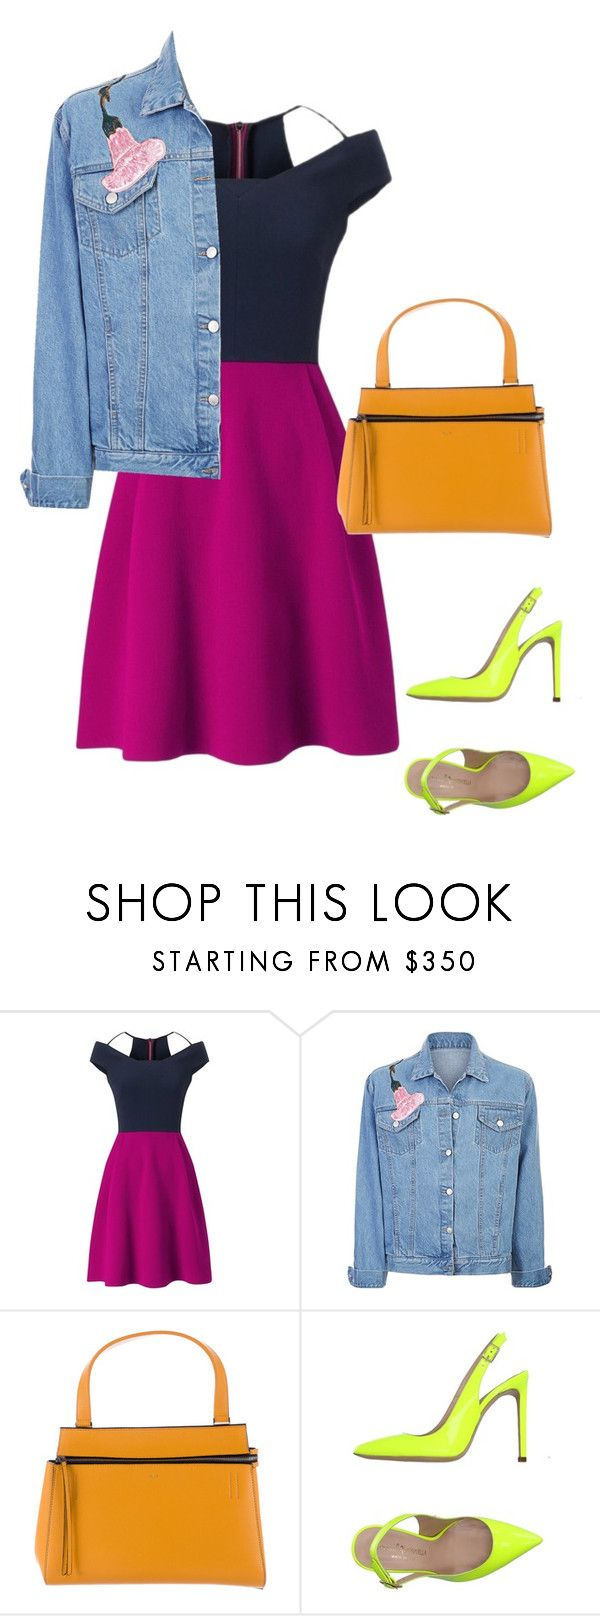 """""""6"""" by asvetik on Polyvore featuring мода, Roland Mouret, CÉLINE и Marco Barbabella"""